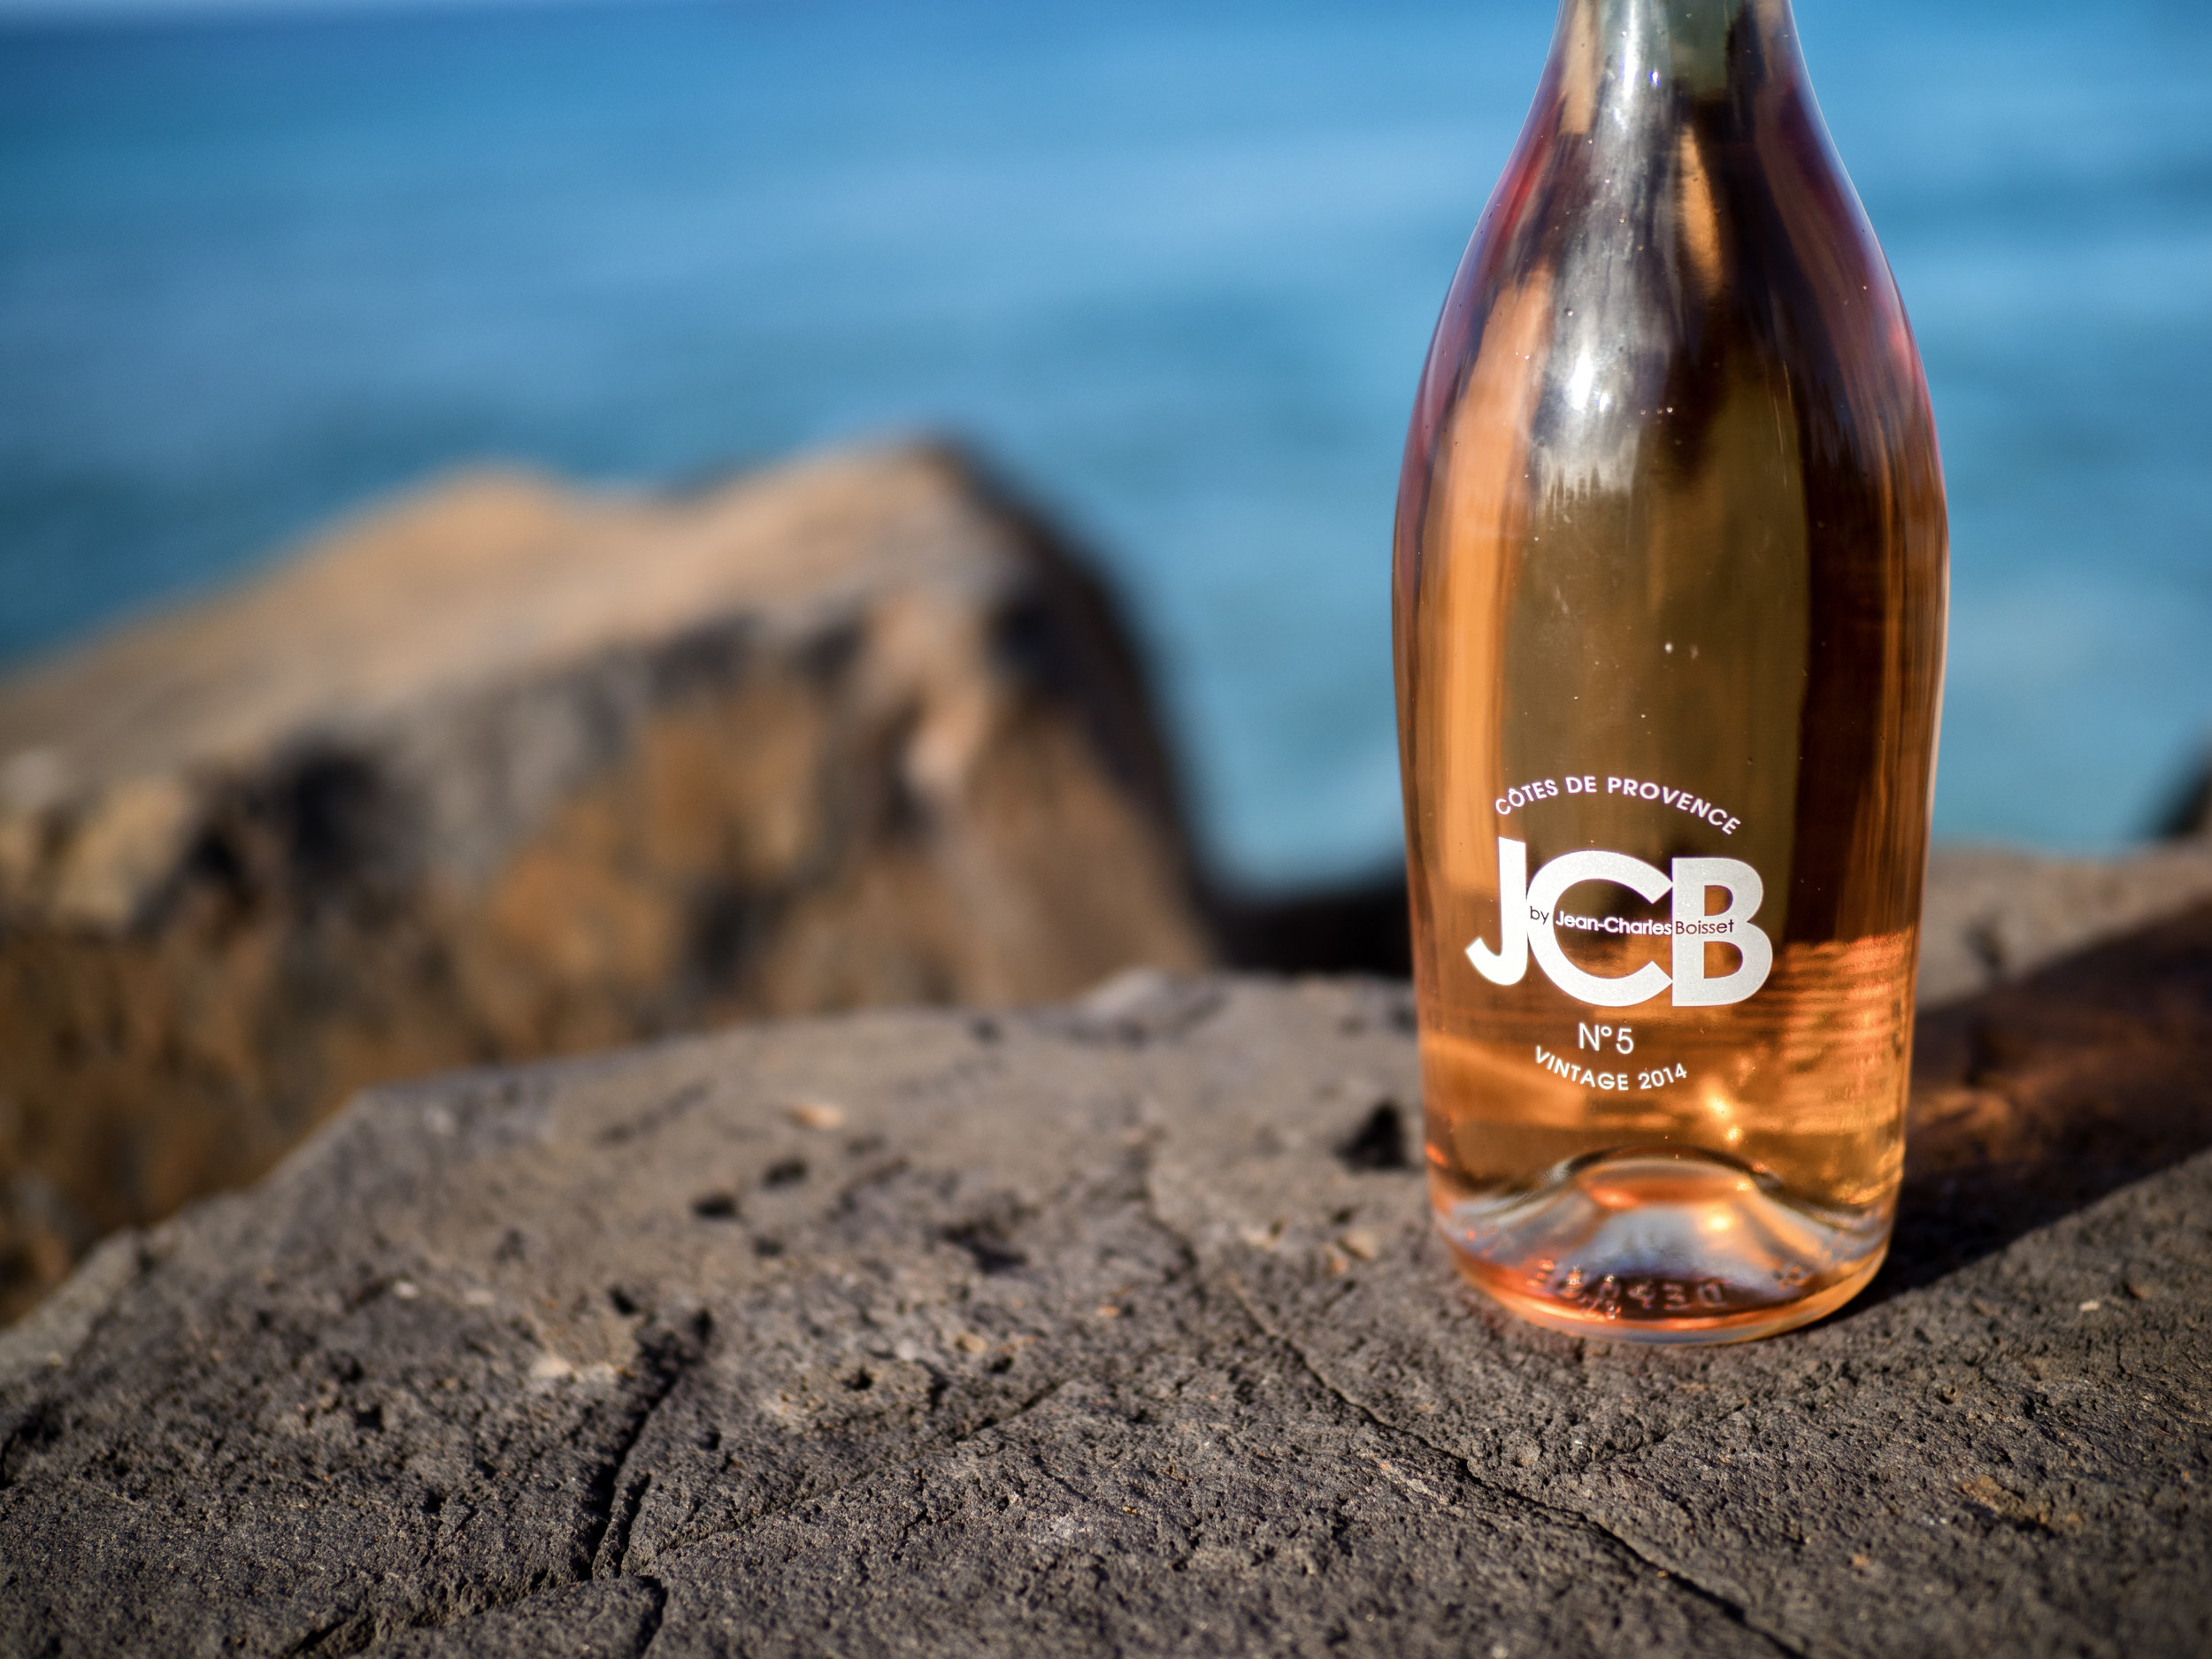 This Provençal rosé feels right at home basking in the warm sun by the sea.